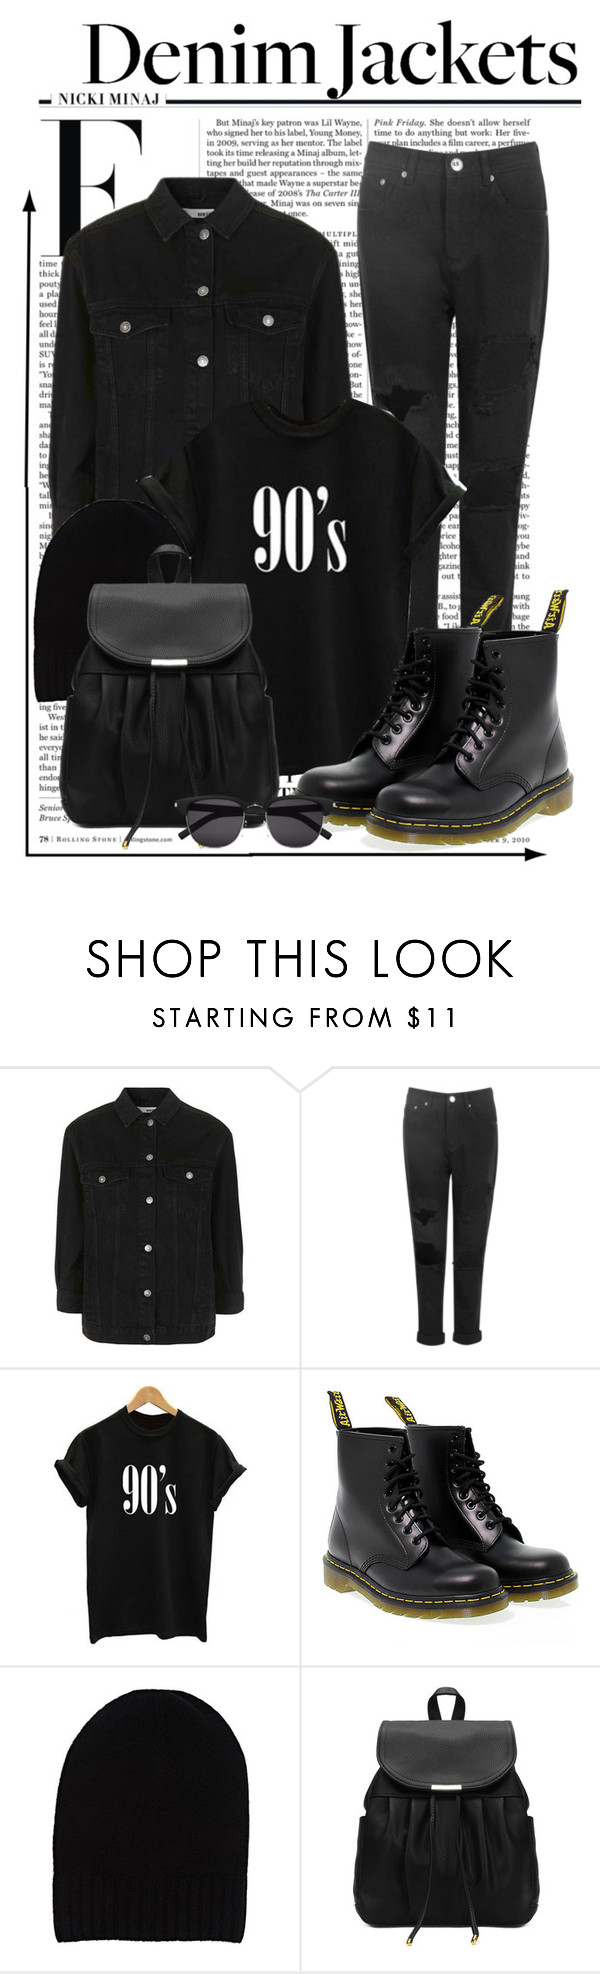 """The Denim Jacket #2"" by sassycici ❤ liked on Polyvore featuring Nicki Minaj, Topshop, Boohoo, Dr. Martens, Barneys New York and Yves Saint Laurent"